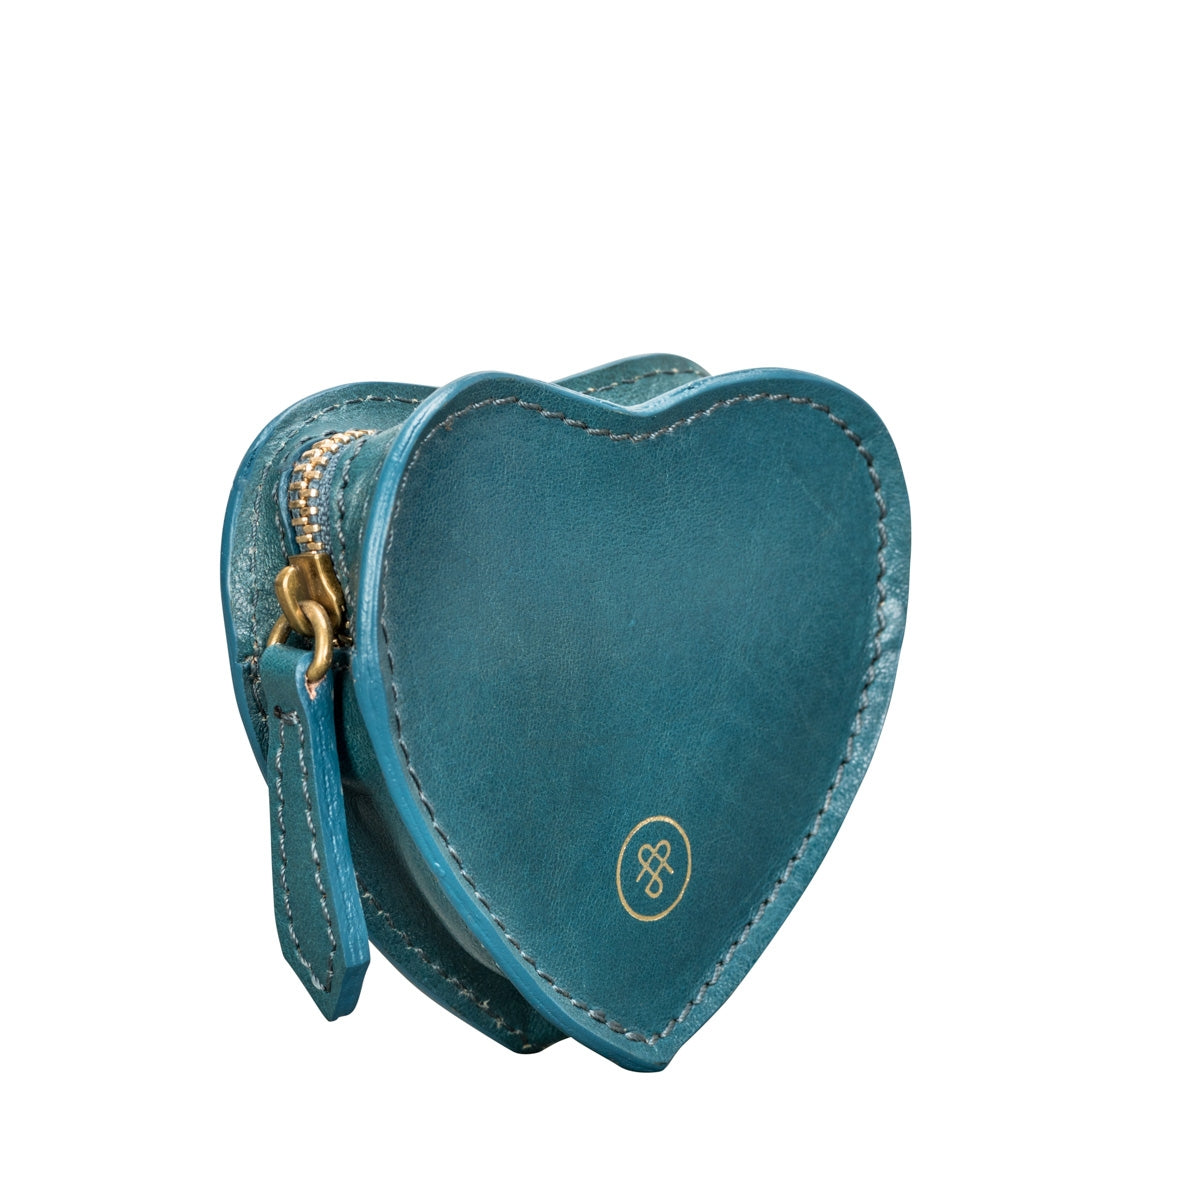 Image 4 of the 'Mirabella' Petrol Leather Heart-Shaped Coin Purse